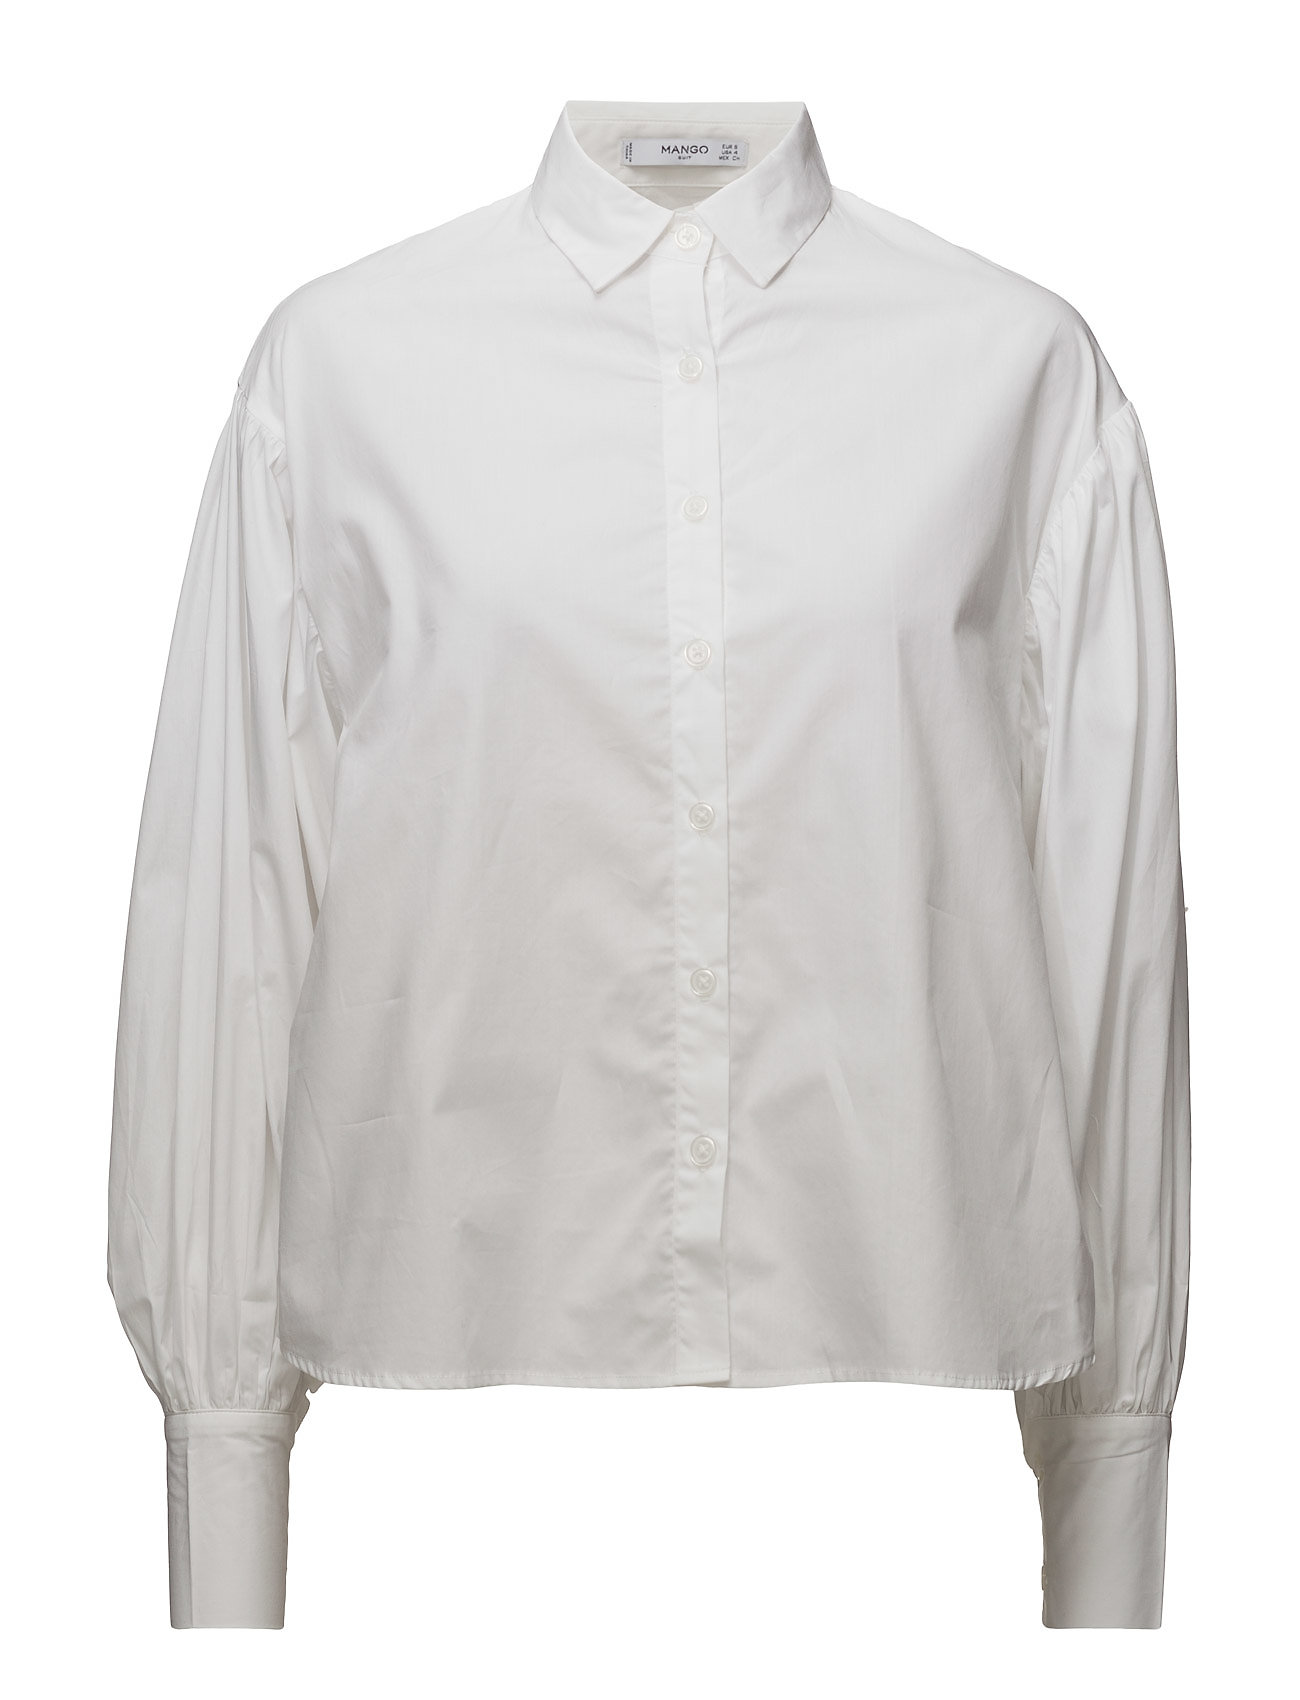 Image of Puffed Sleeves Shirt (2732611173)